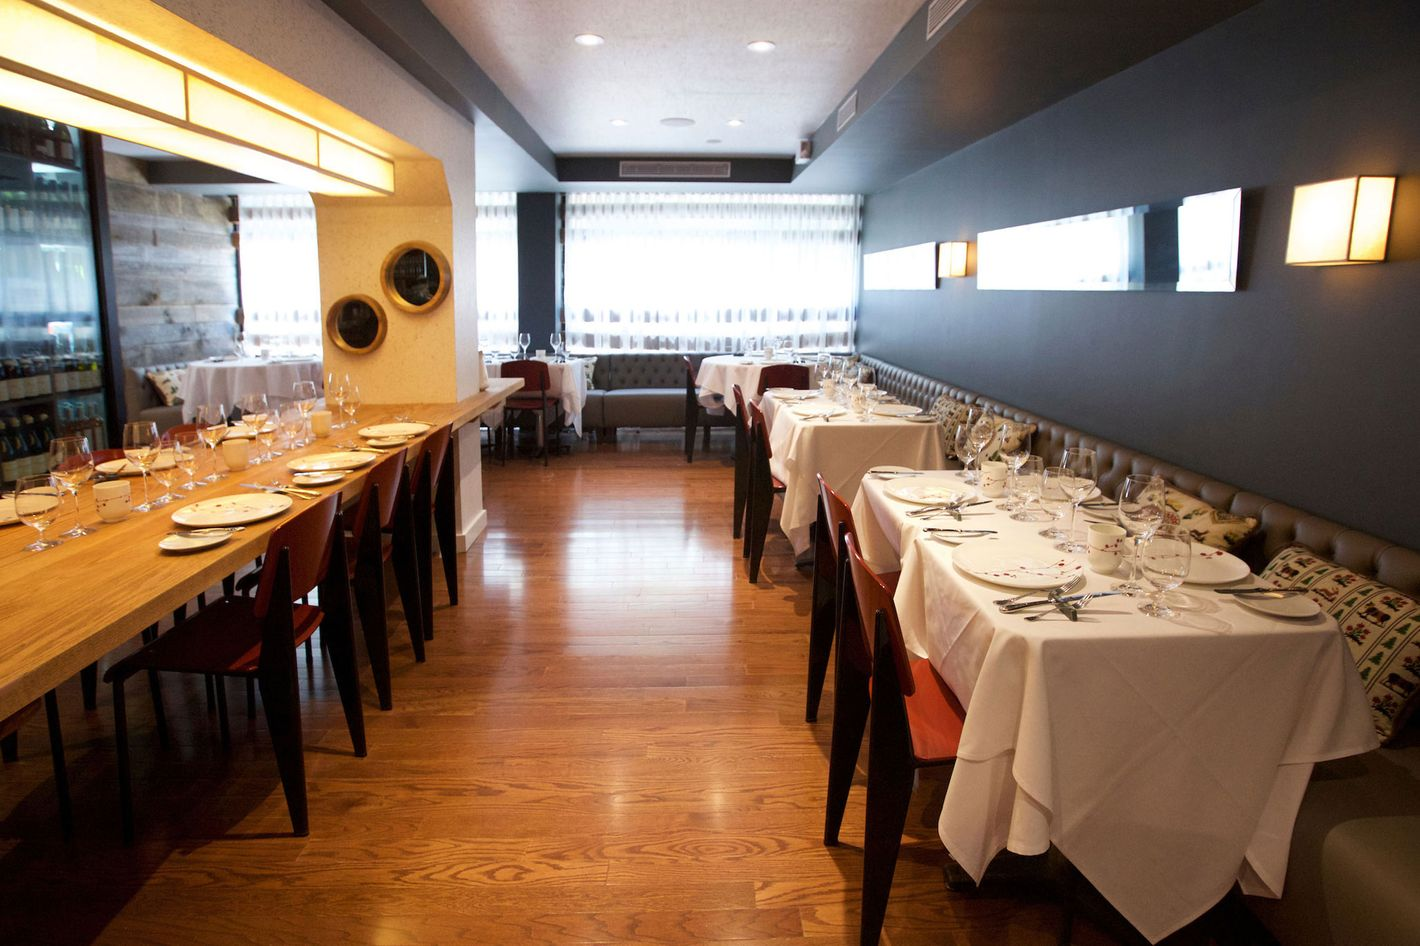 mas (farmhouse) reopens in nyc